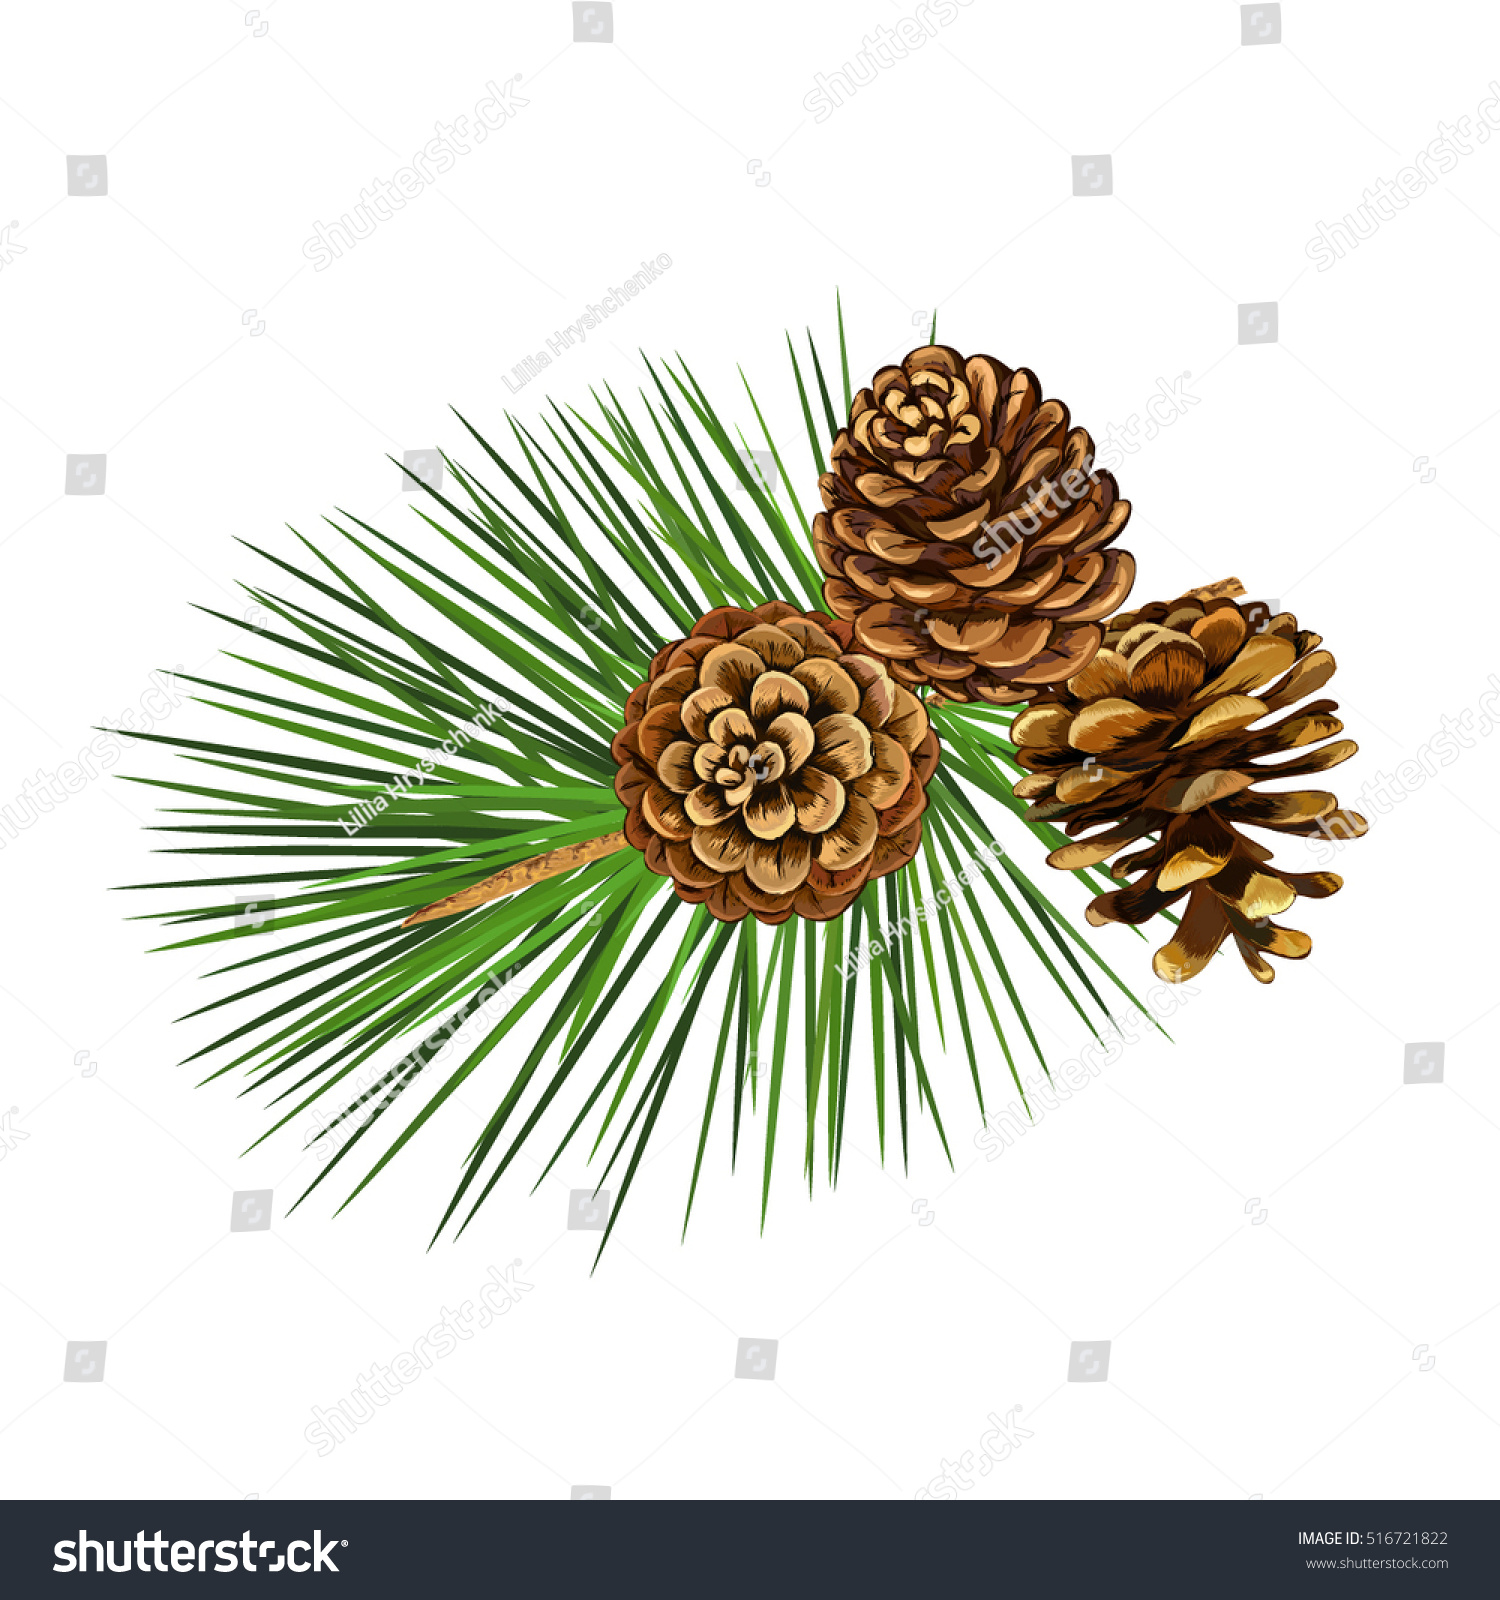 Pine Cone Illustration Vector Illustration Pi...